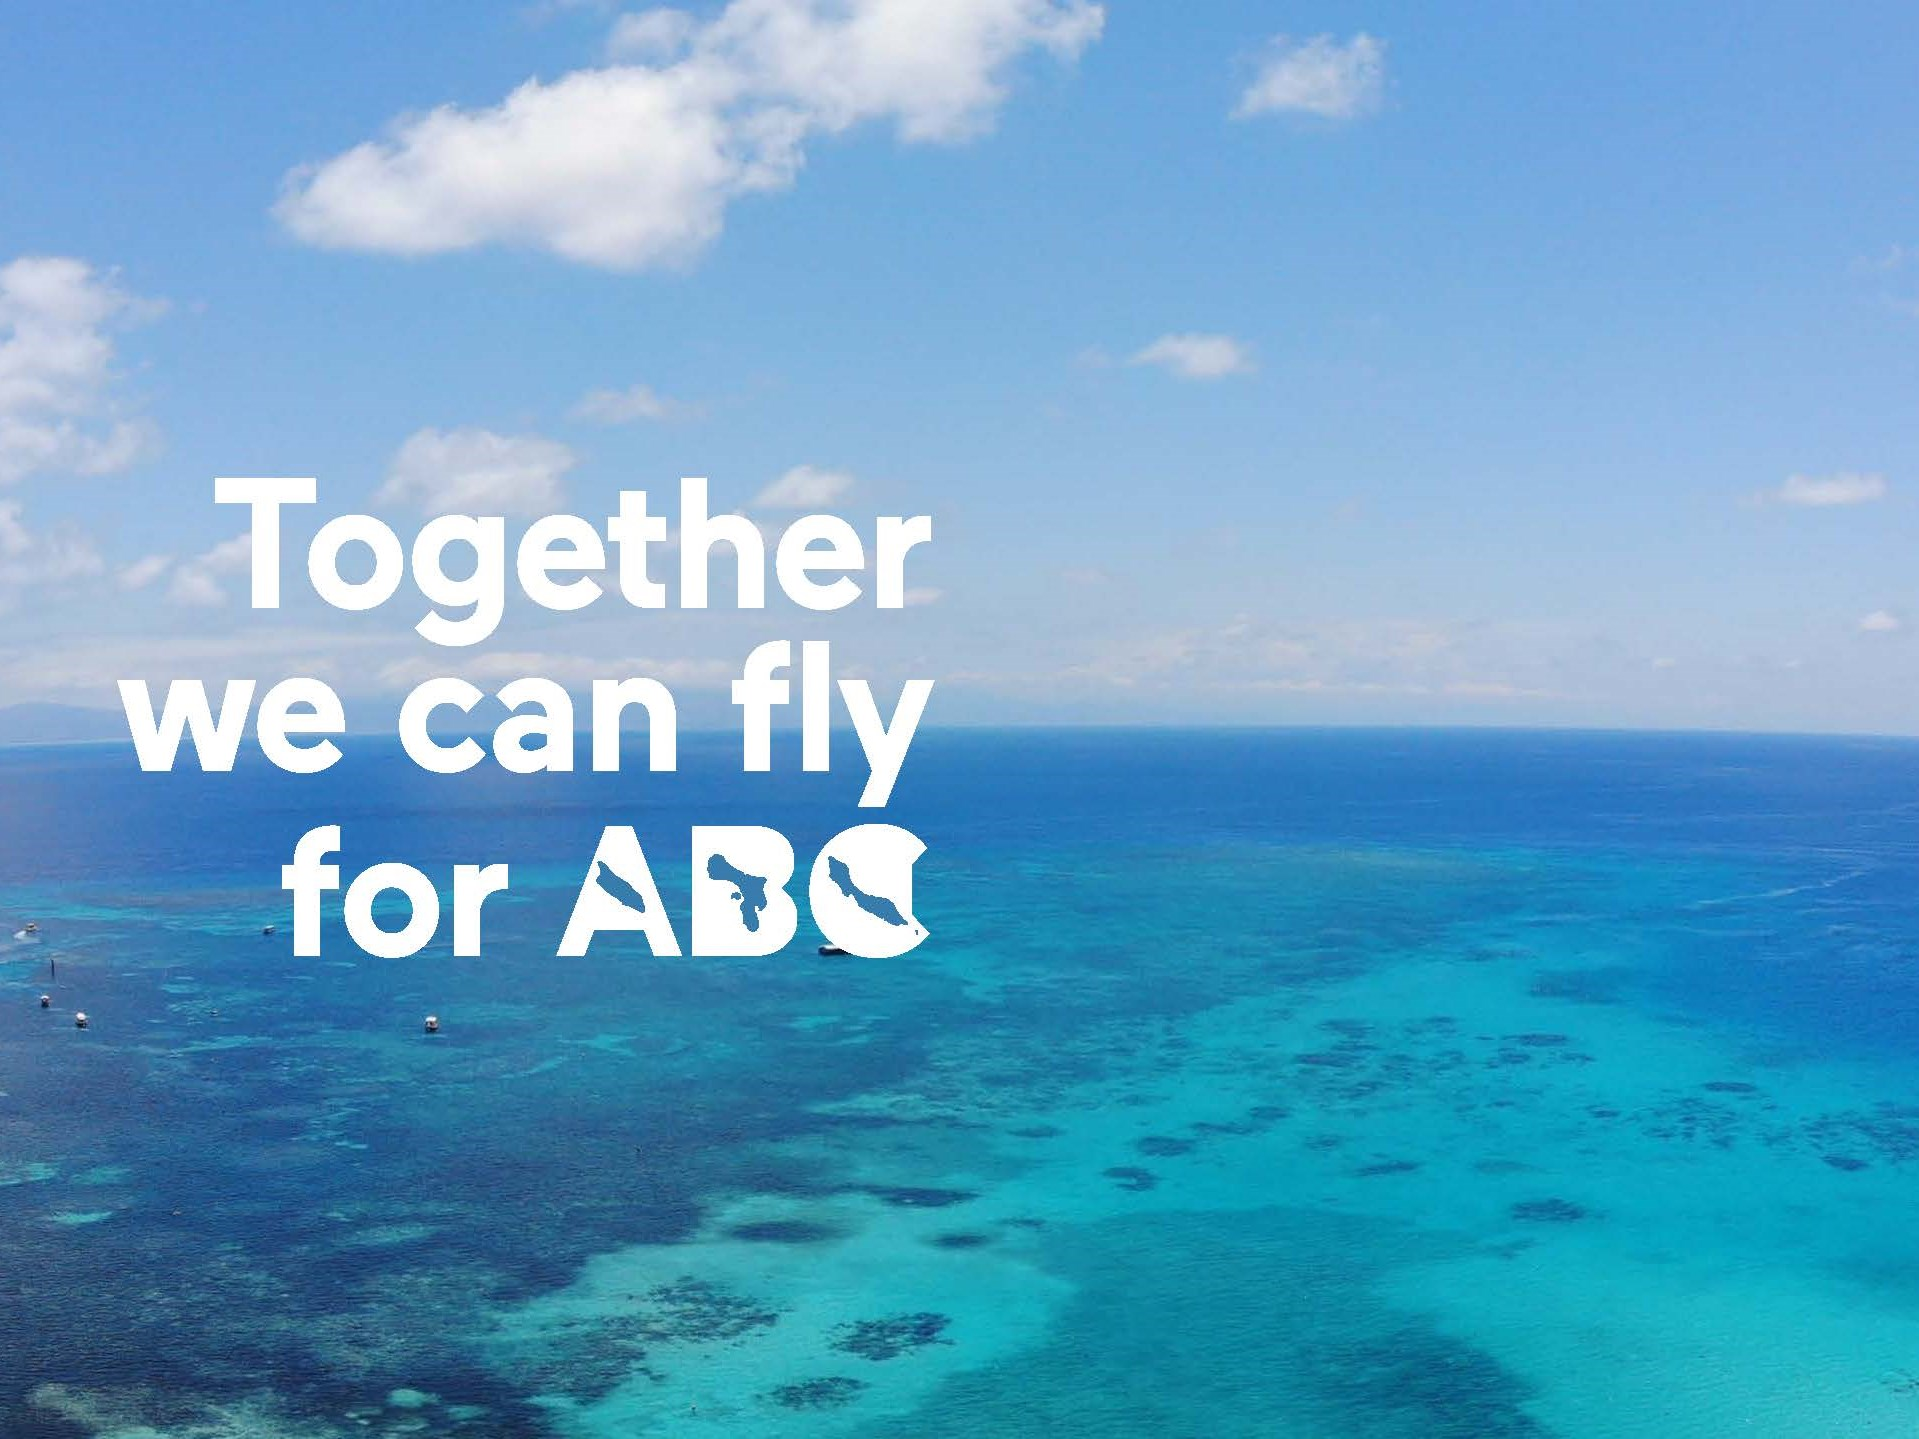 Ministerie IenW en de ABC-eilanden organiseren de Koninkrijksdialoog ''Together we can fly for ABC'.